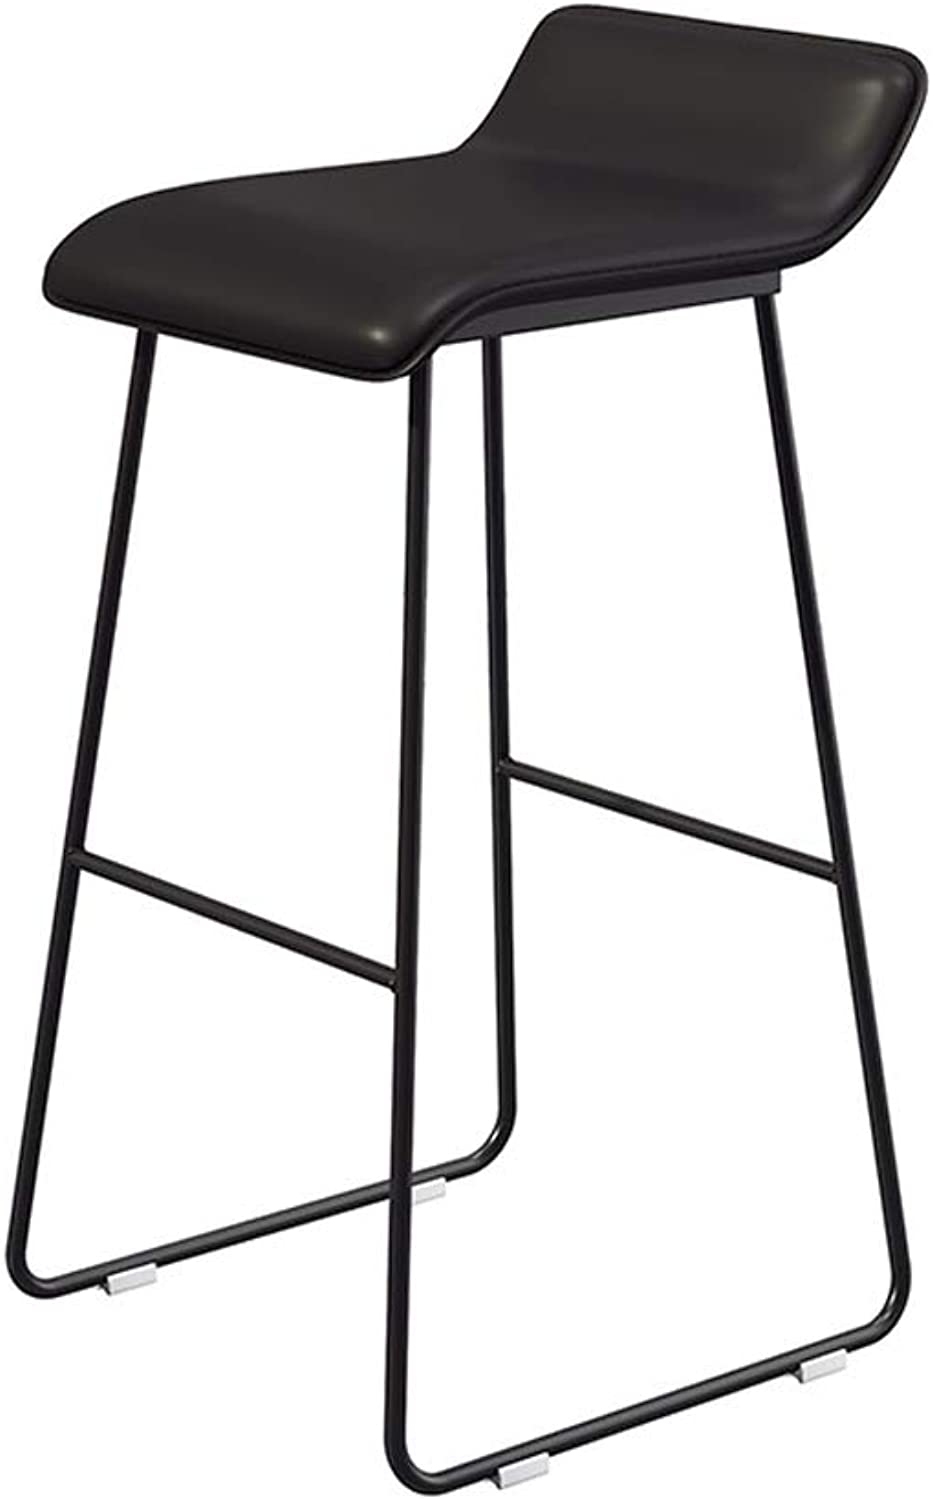 Yan Fei Bar Stool, Coffee Lounge Stool, Wrought Iron Padded bar Chair, 5 colors, Size  65 cm   70 cm   75 cm Comfortable Stools (color   A, Size   L)